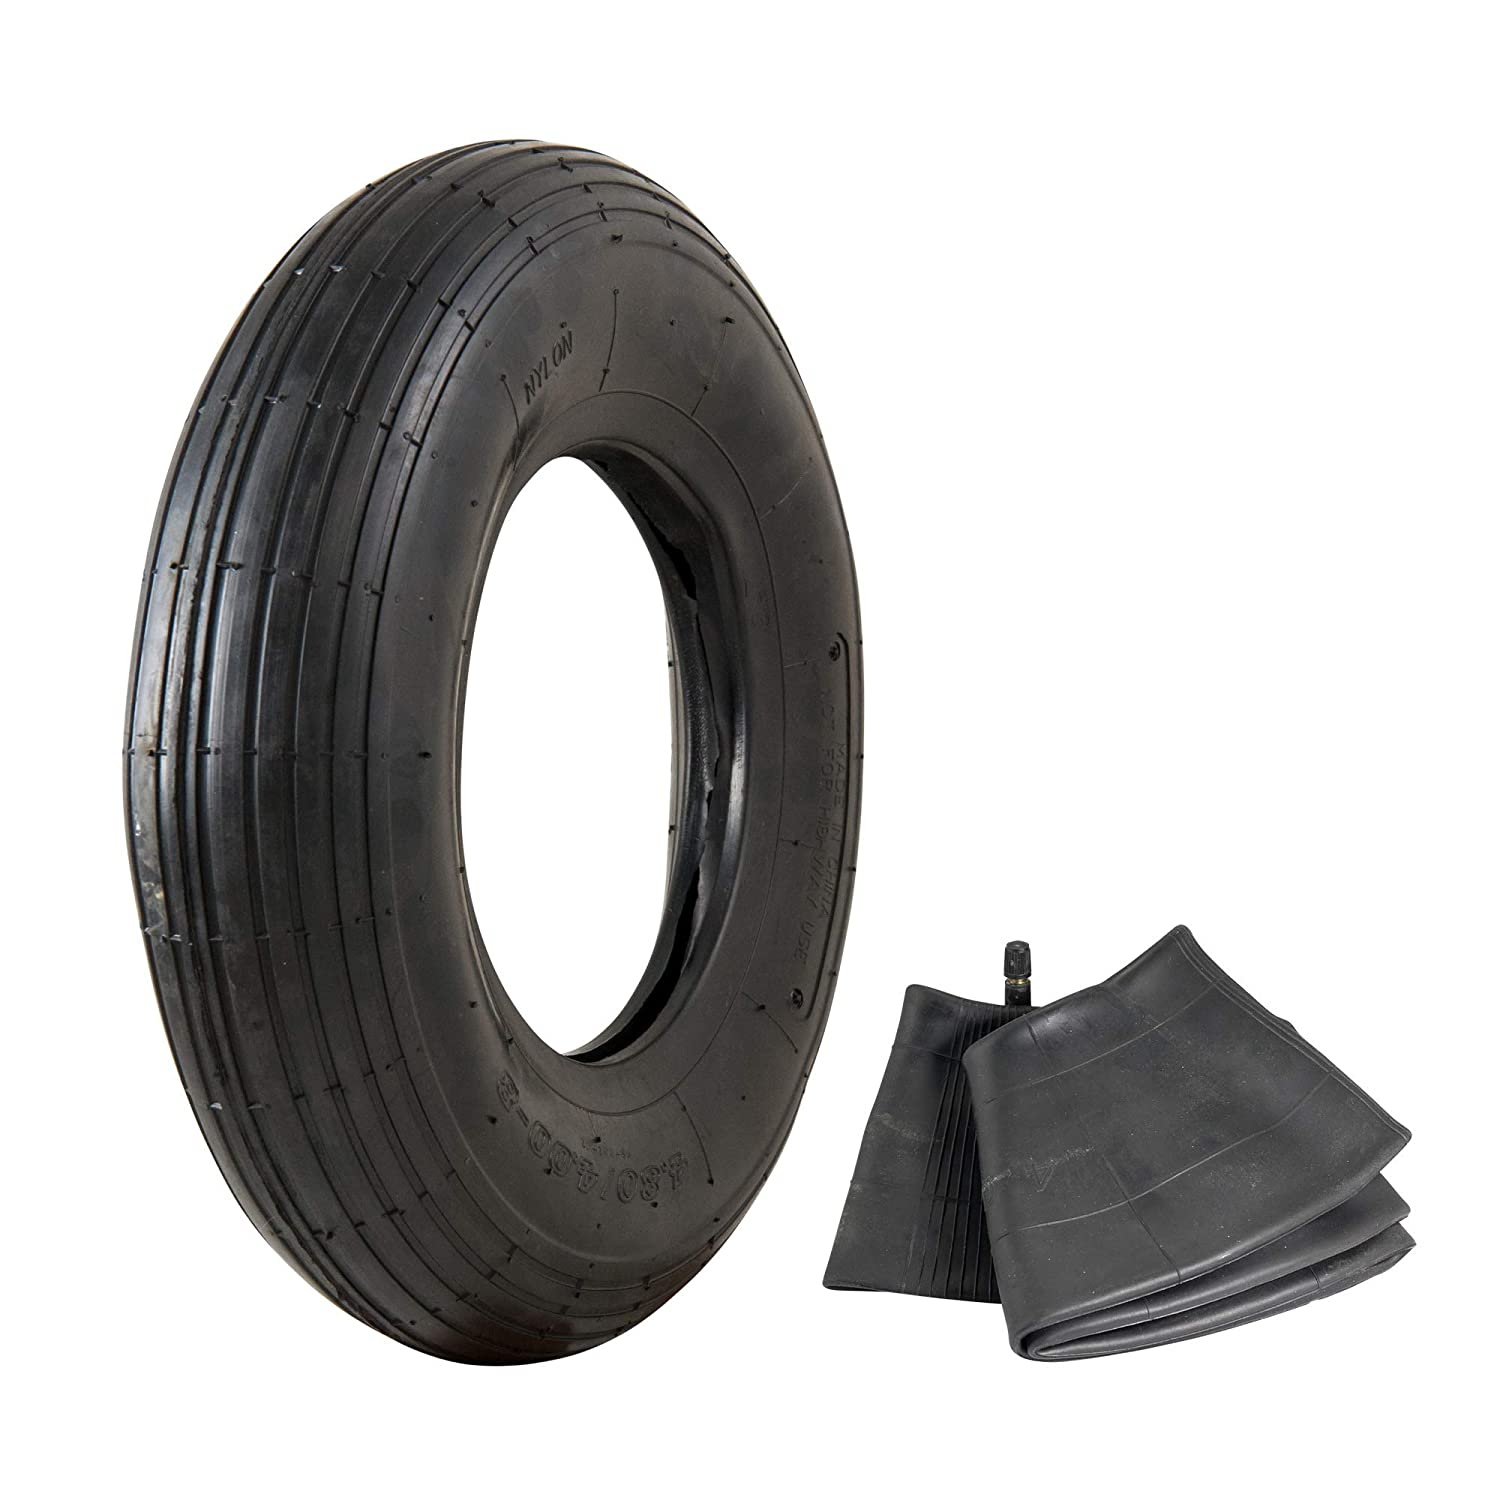 "4.80/4.00-8"" Replacement Pneumatic Wheel Tire and Tube"